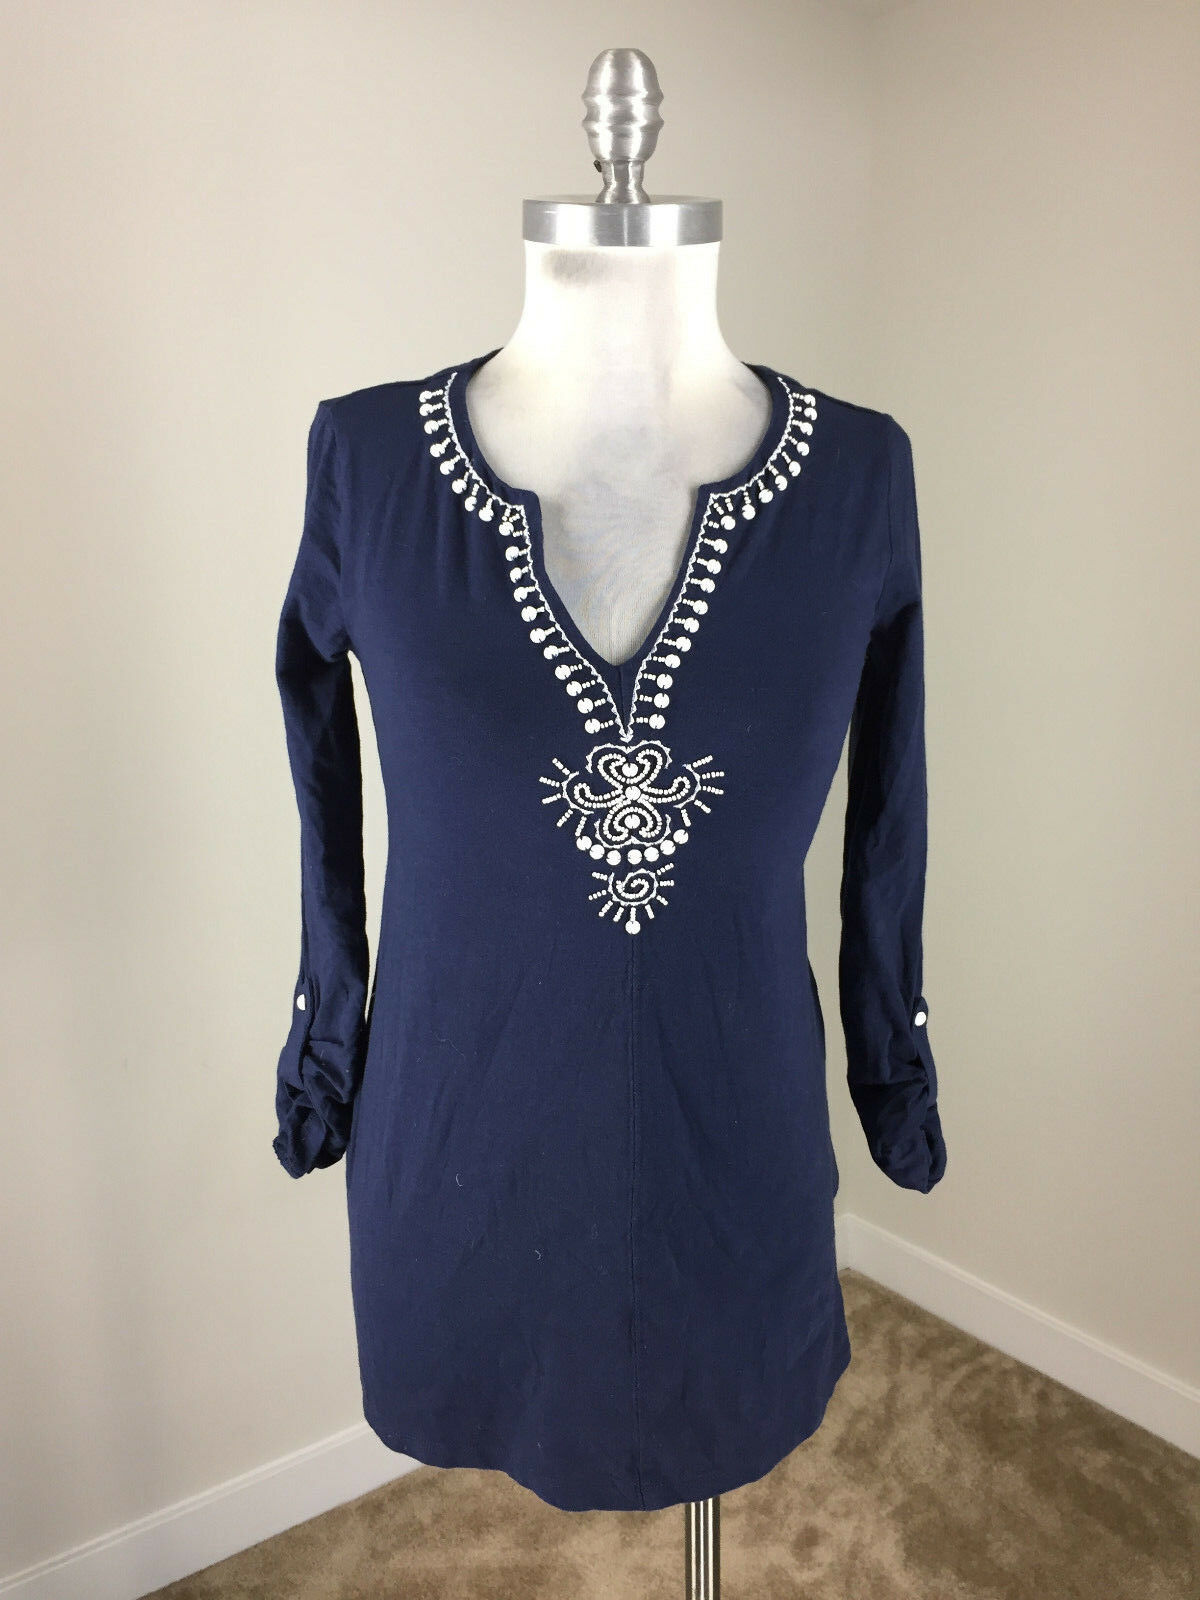 Lilly Pulitzer XS Navy Blau Weiß Embroiderot Embellished Tunic 3 4 roll tab sle